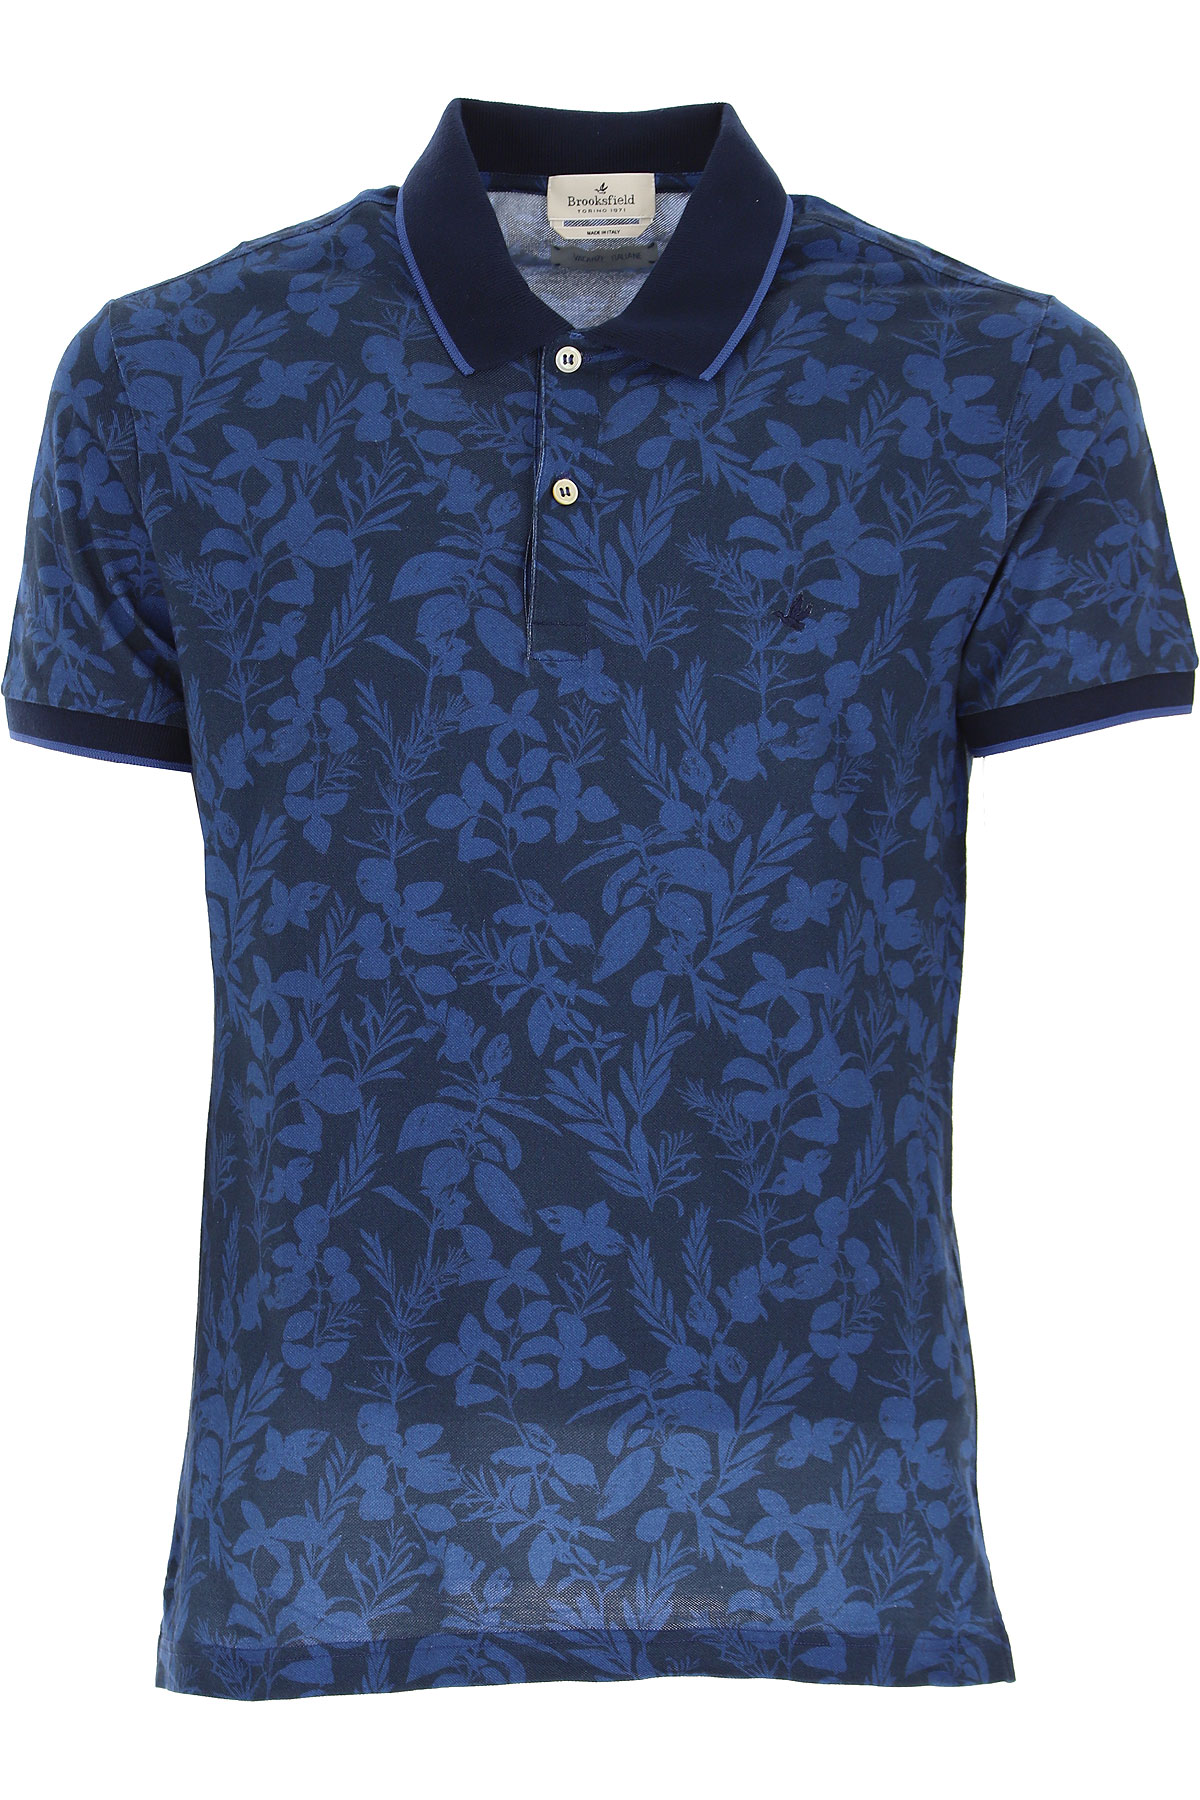 Brooksfield Polo Shirt for Men On Sale, Blue, Cotton, 2019, L M XL XXL